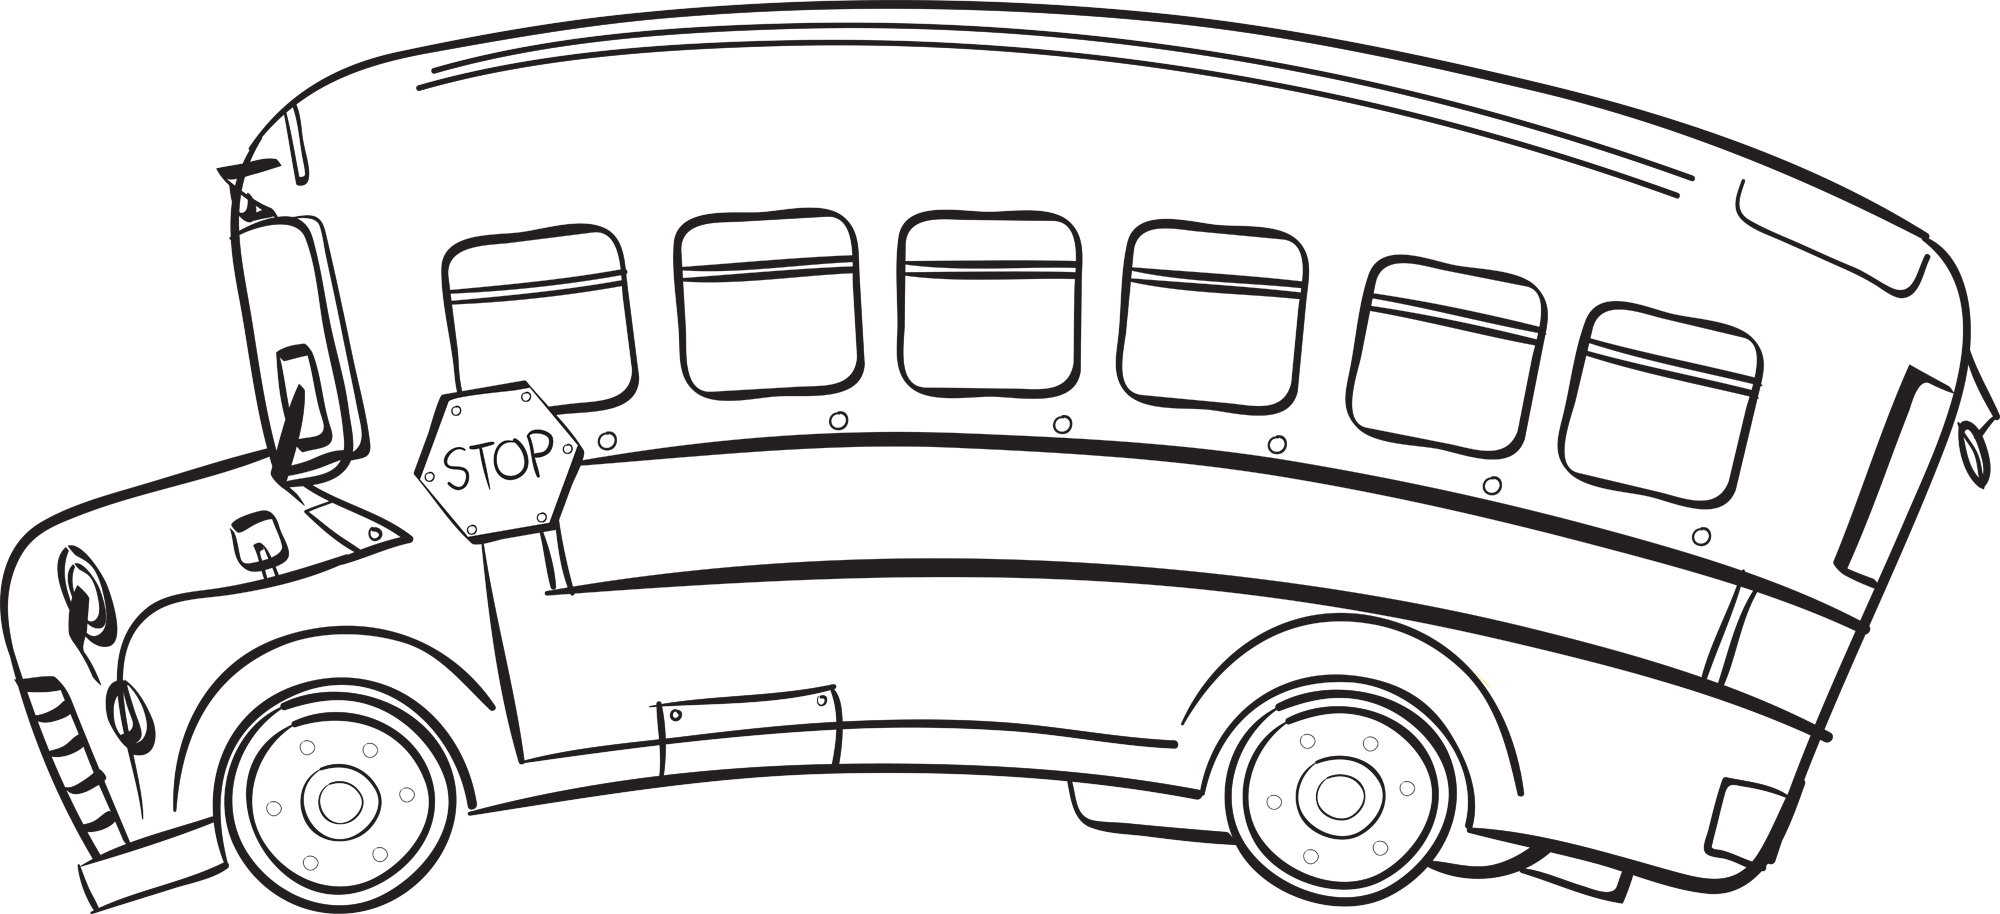 School Bus Black And White School Bus Clipart Black And